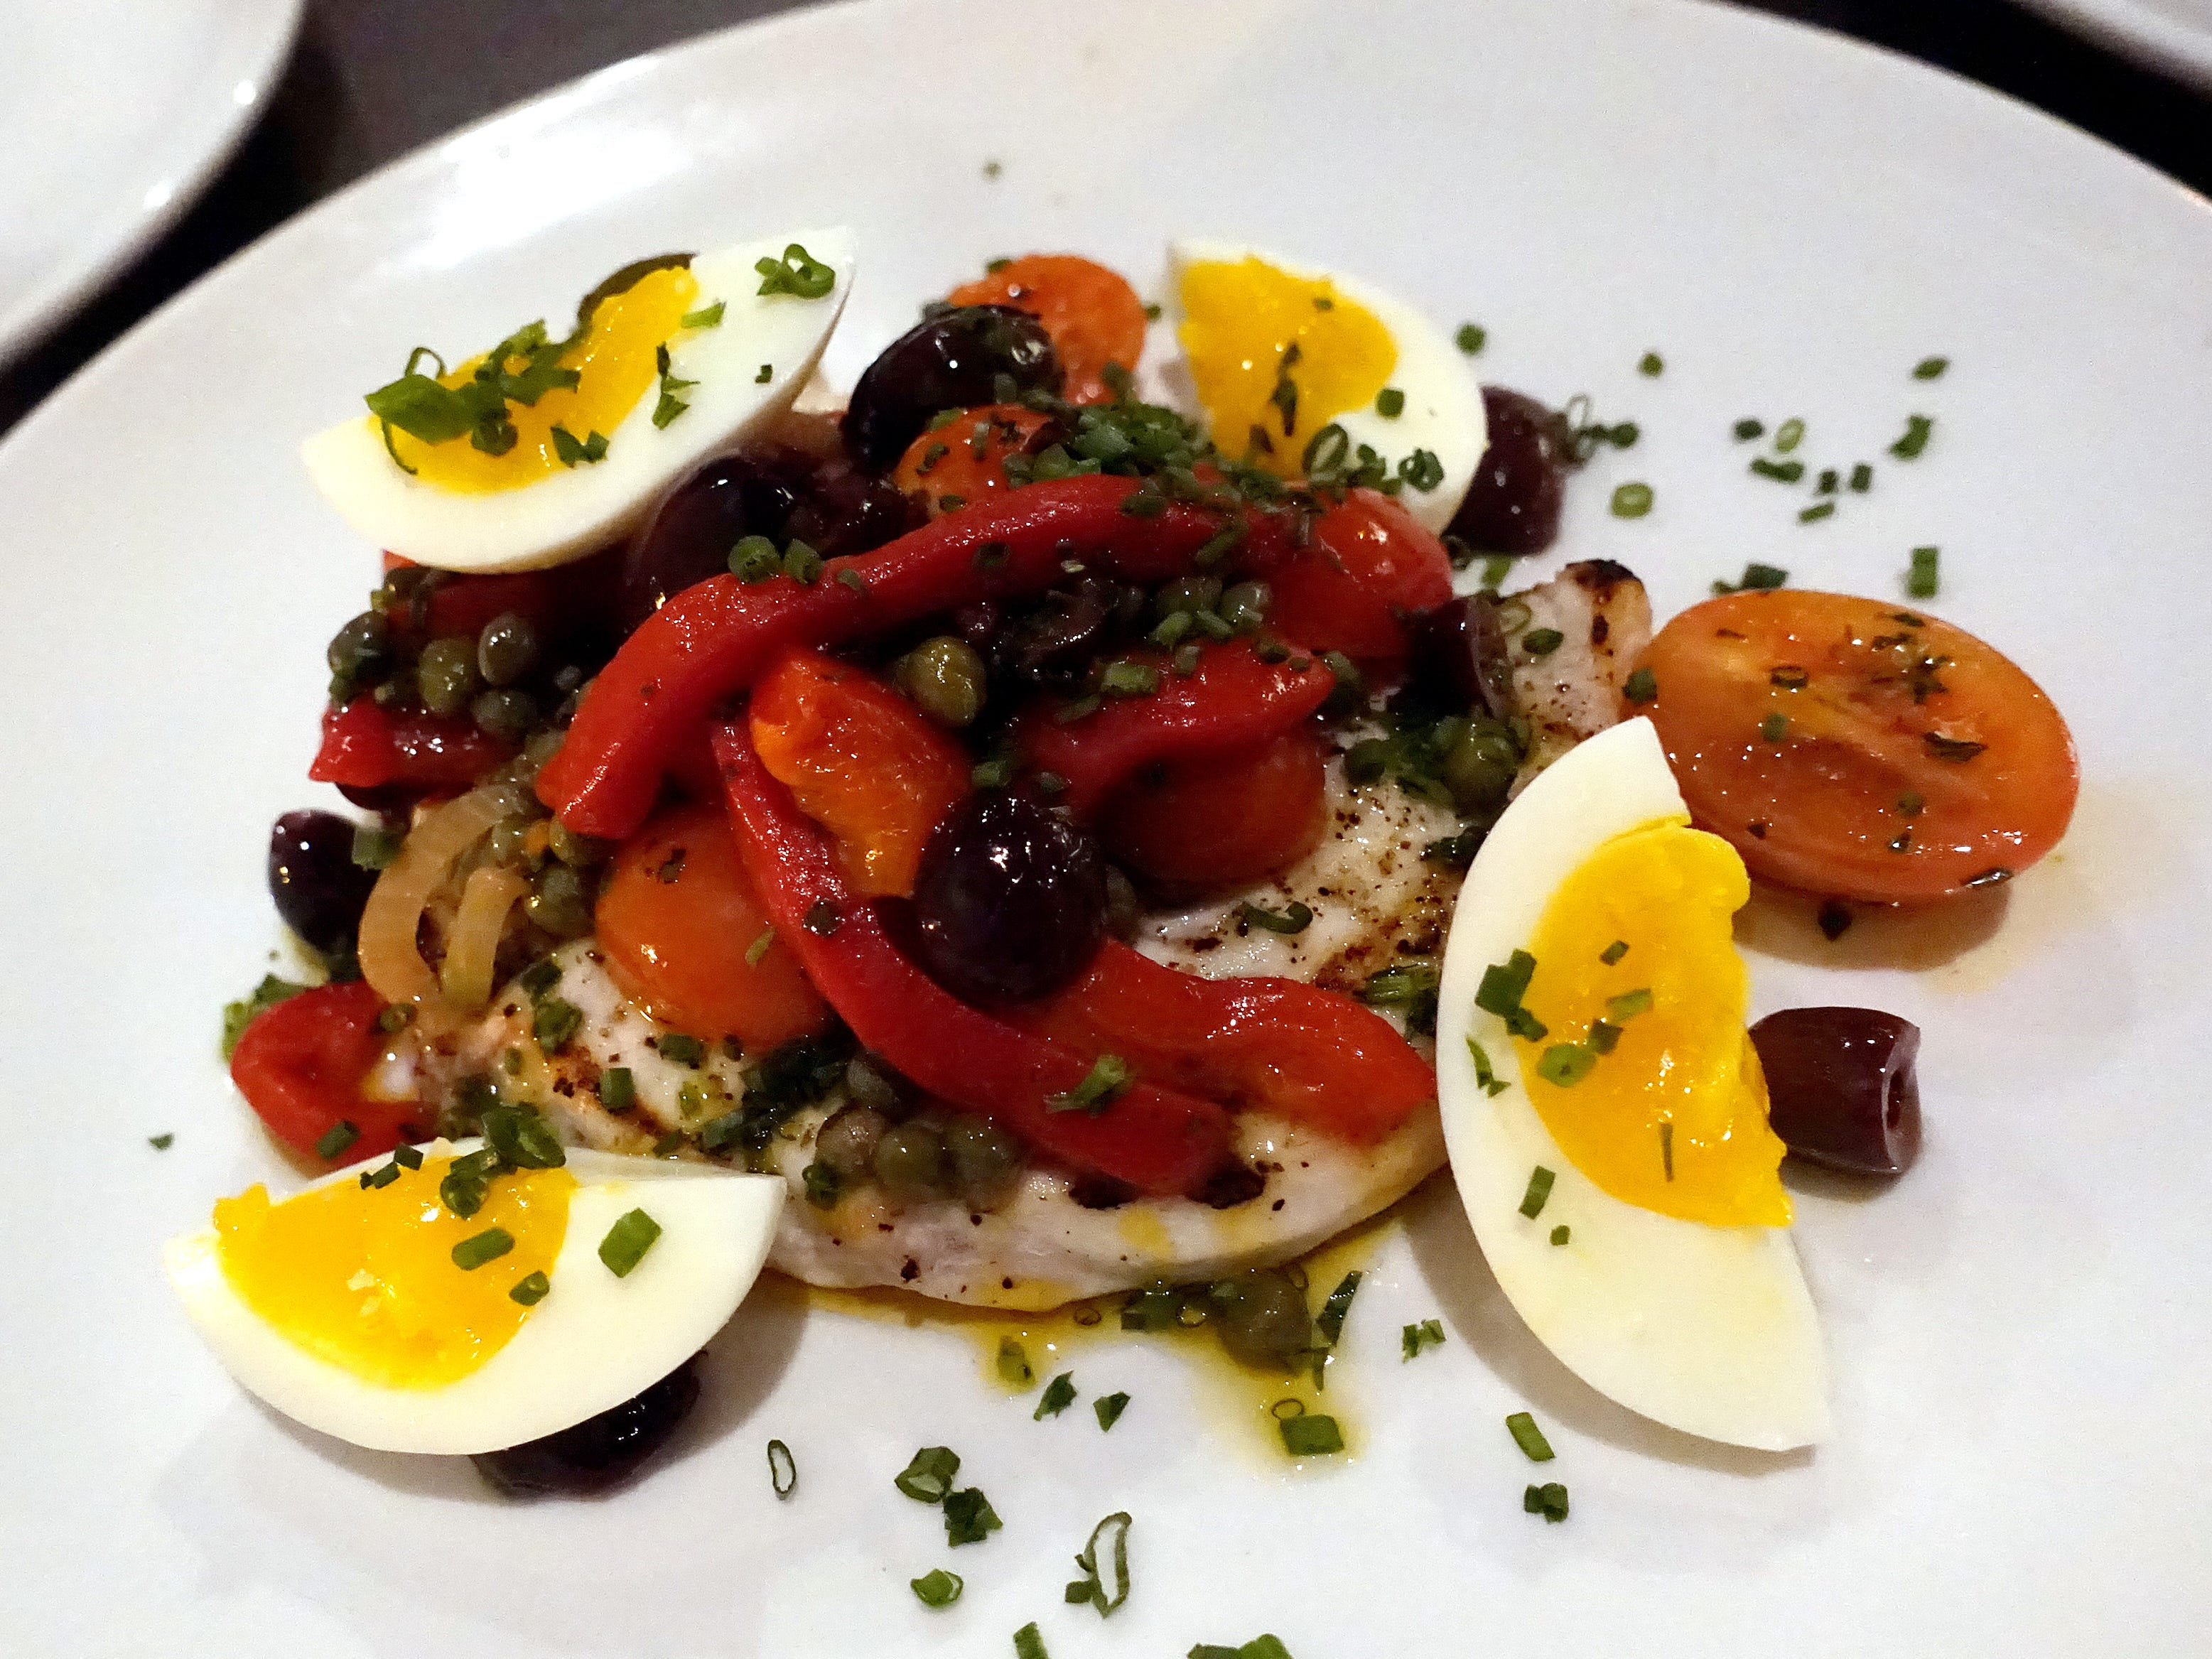 Grilled Chula swordfish with roasted peppers, tomatoes, capers, olives and soft boiled egg at Hush Public House in Scottsdale.